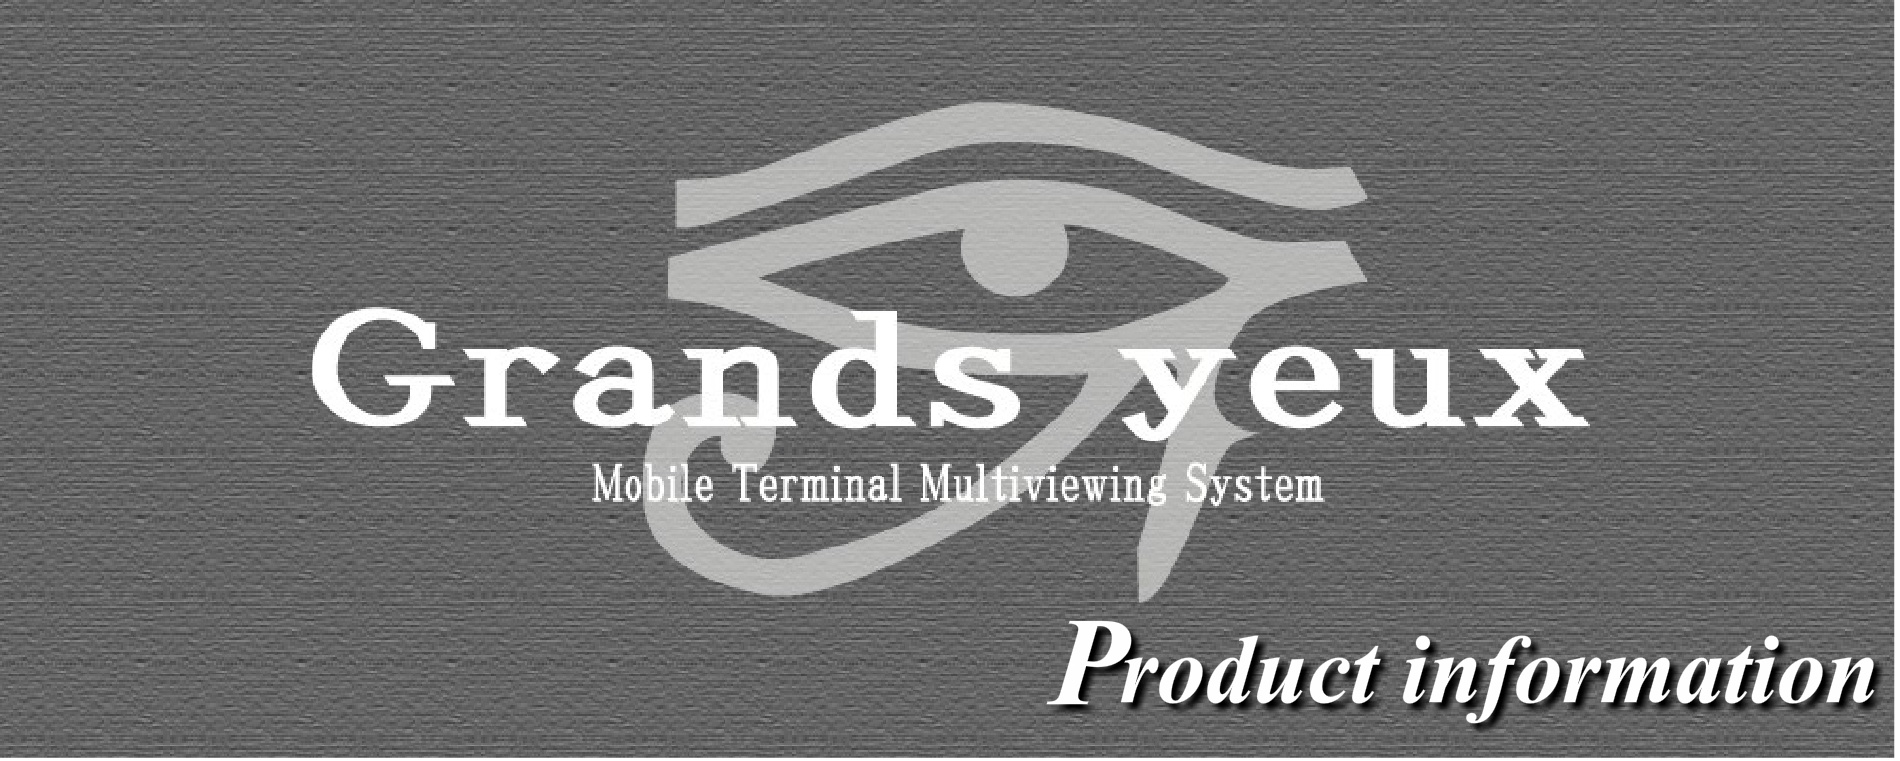 Grands yeux Product infomation